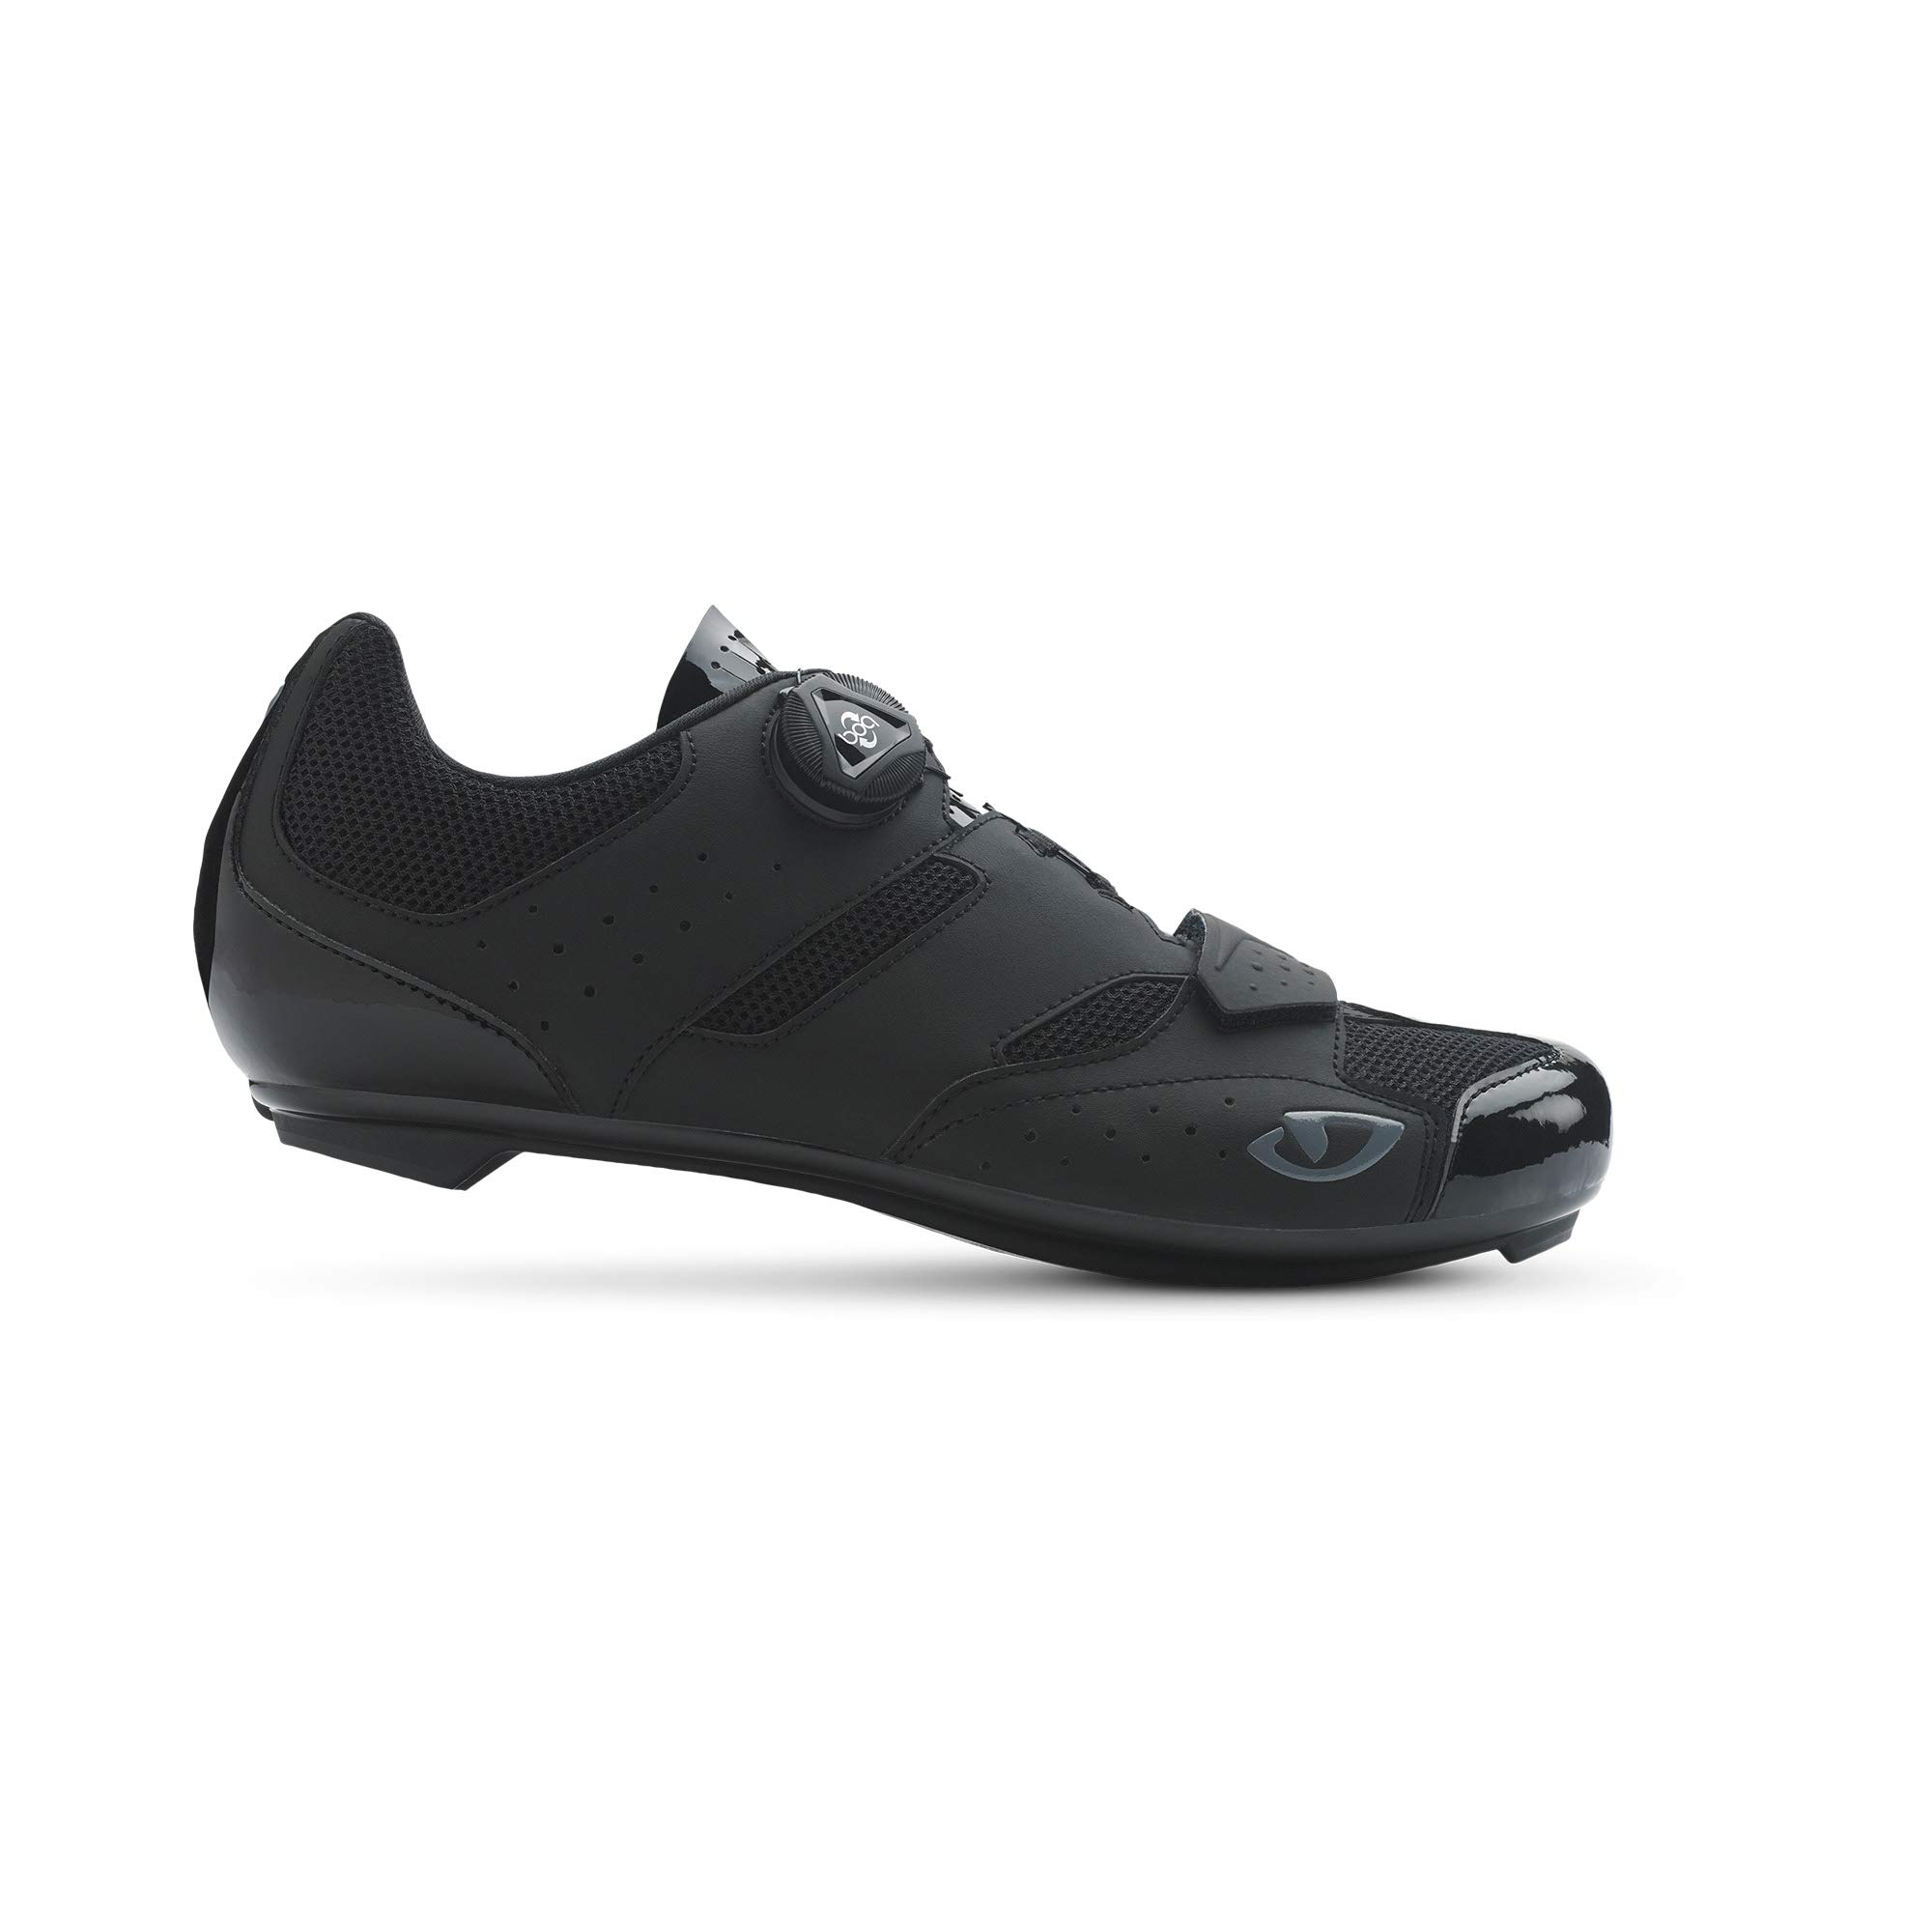 Giro Savix HV+ Men's Road Cycling Shoes